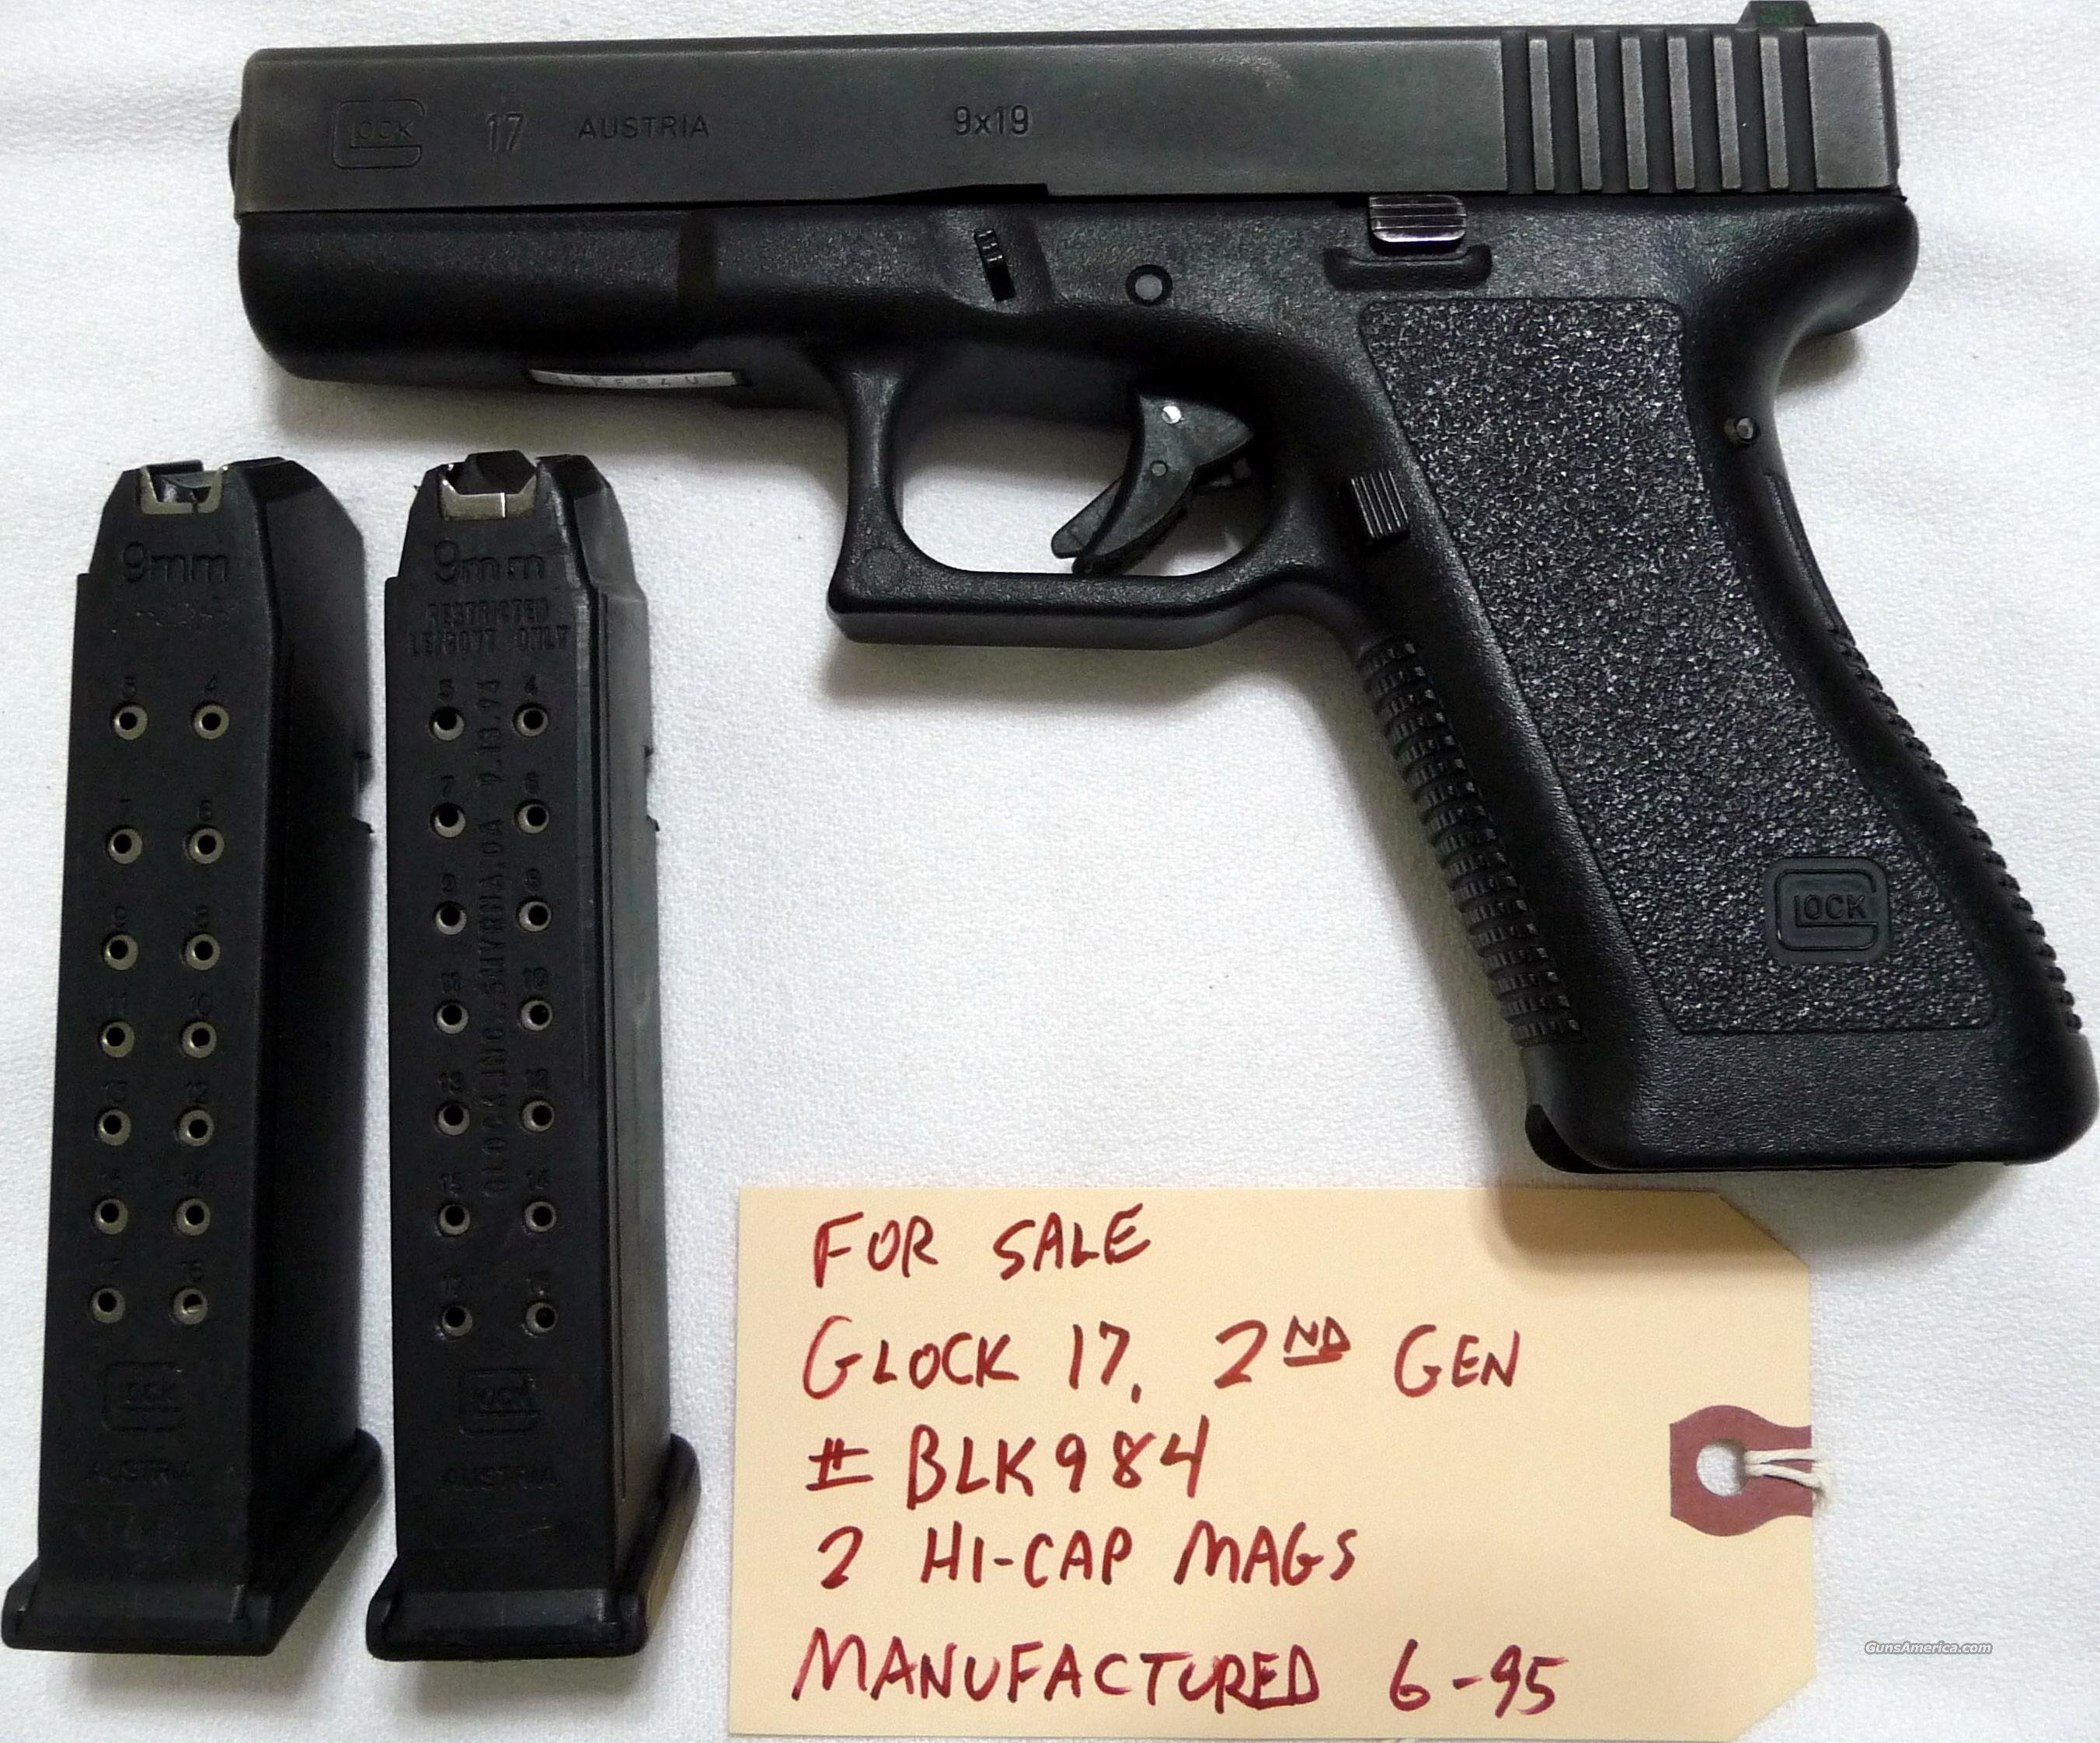 Used Glock-17 Gen-2 9mm with 2 hi-cap mags  LAYAWAY AVAILABLE  Guns > Pistols > Glock Pistols > 17